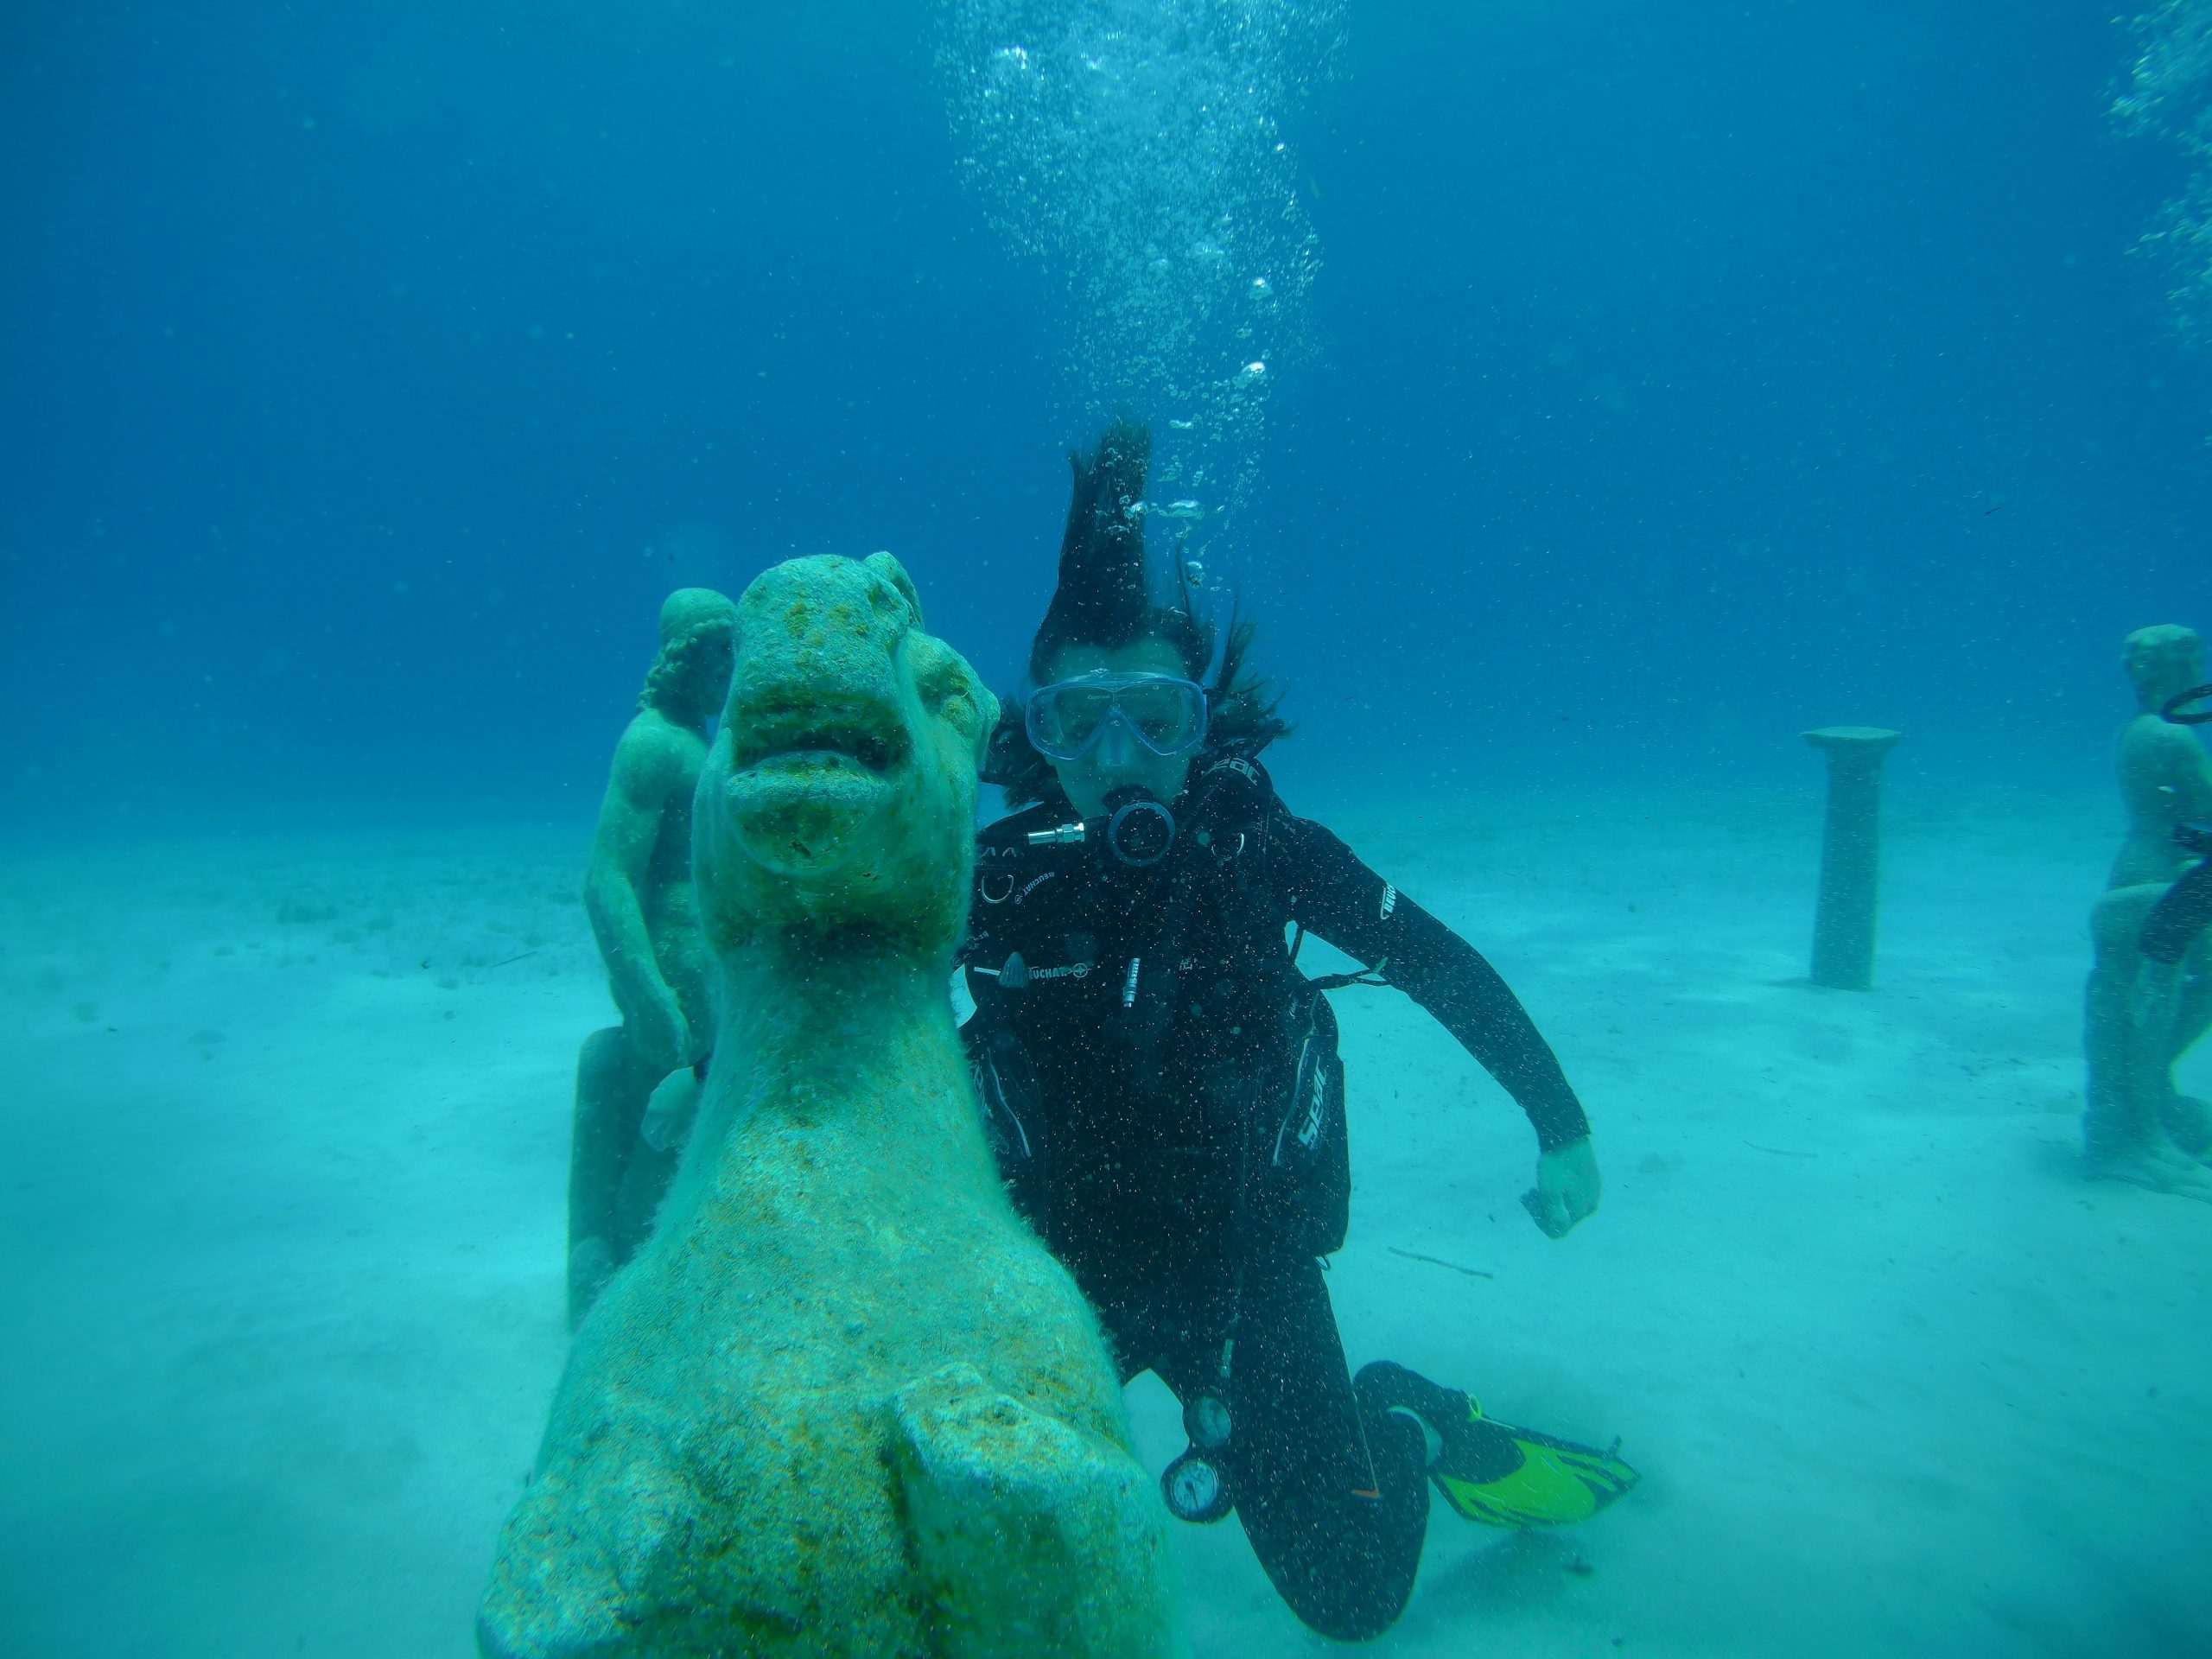 Diver with  Sea horse  Green Bay